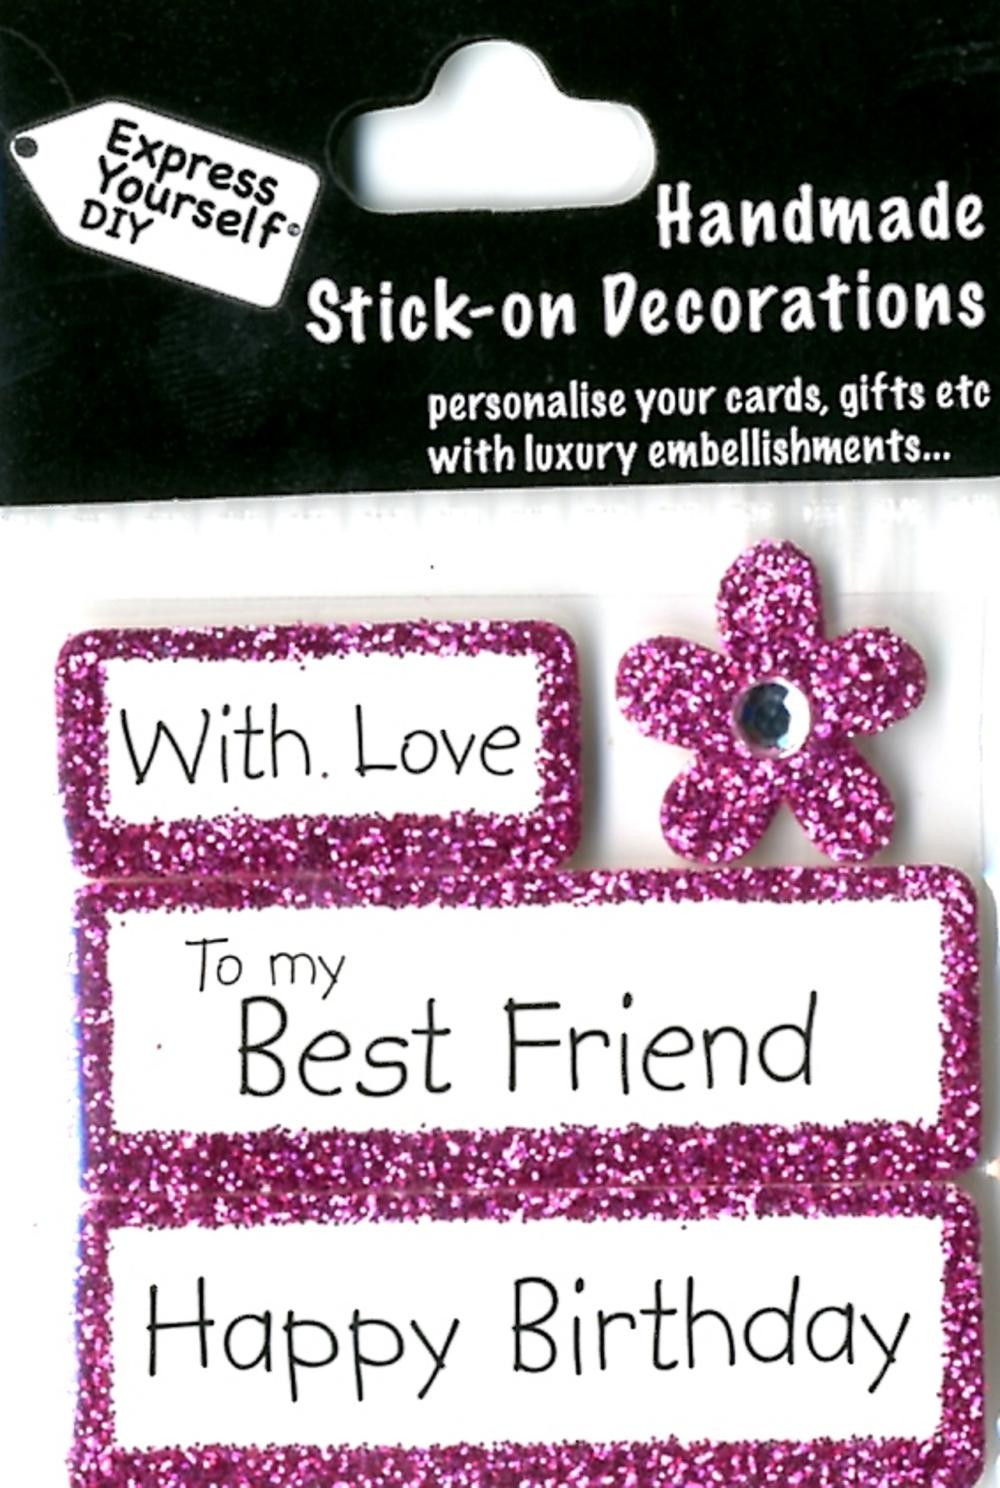 Best ideas about Happy Birthday Card For Best Friend . Save or Pin Happy Birthday Best Friend DIY Greeting Card Toppers Now.